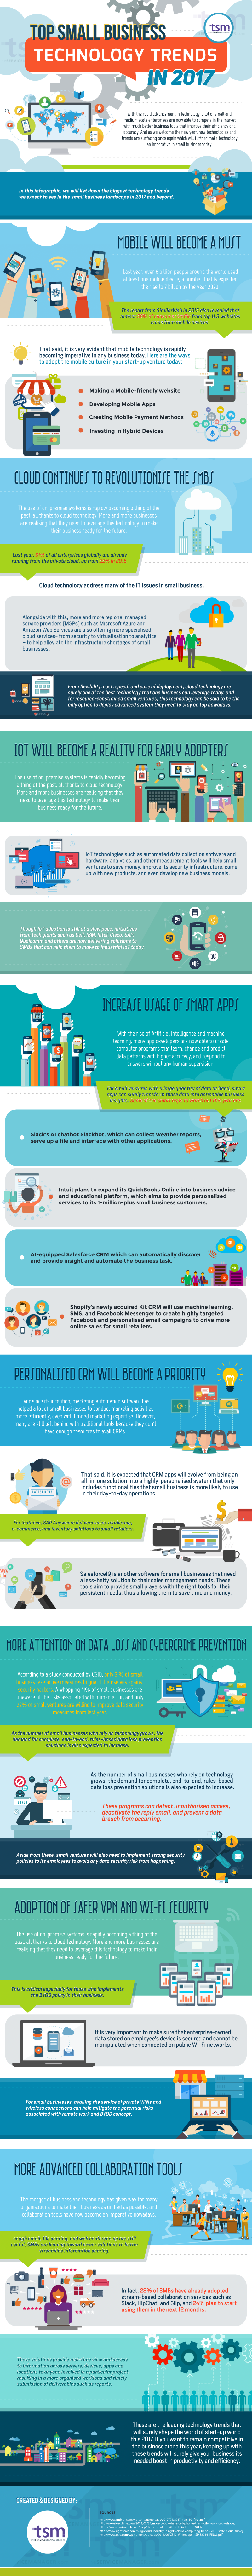 Top-Technology-Trends-for-Small-Businesses-Infographic